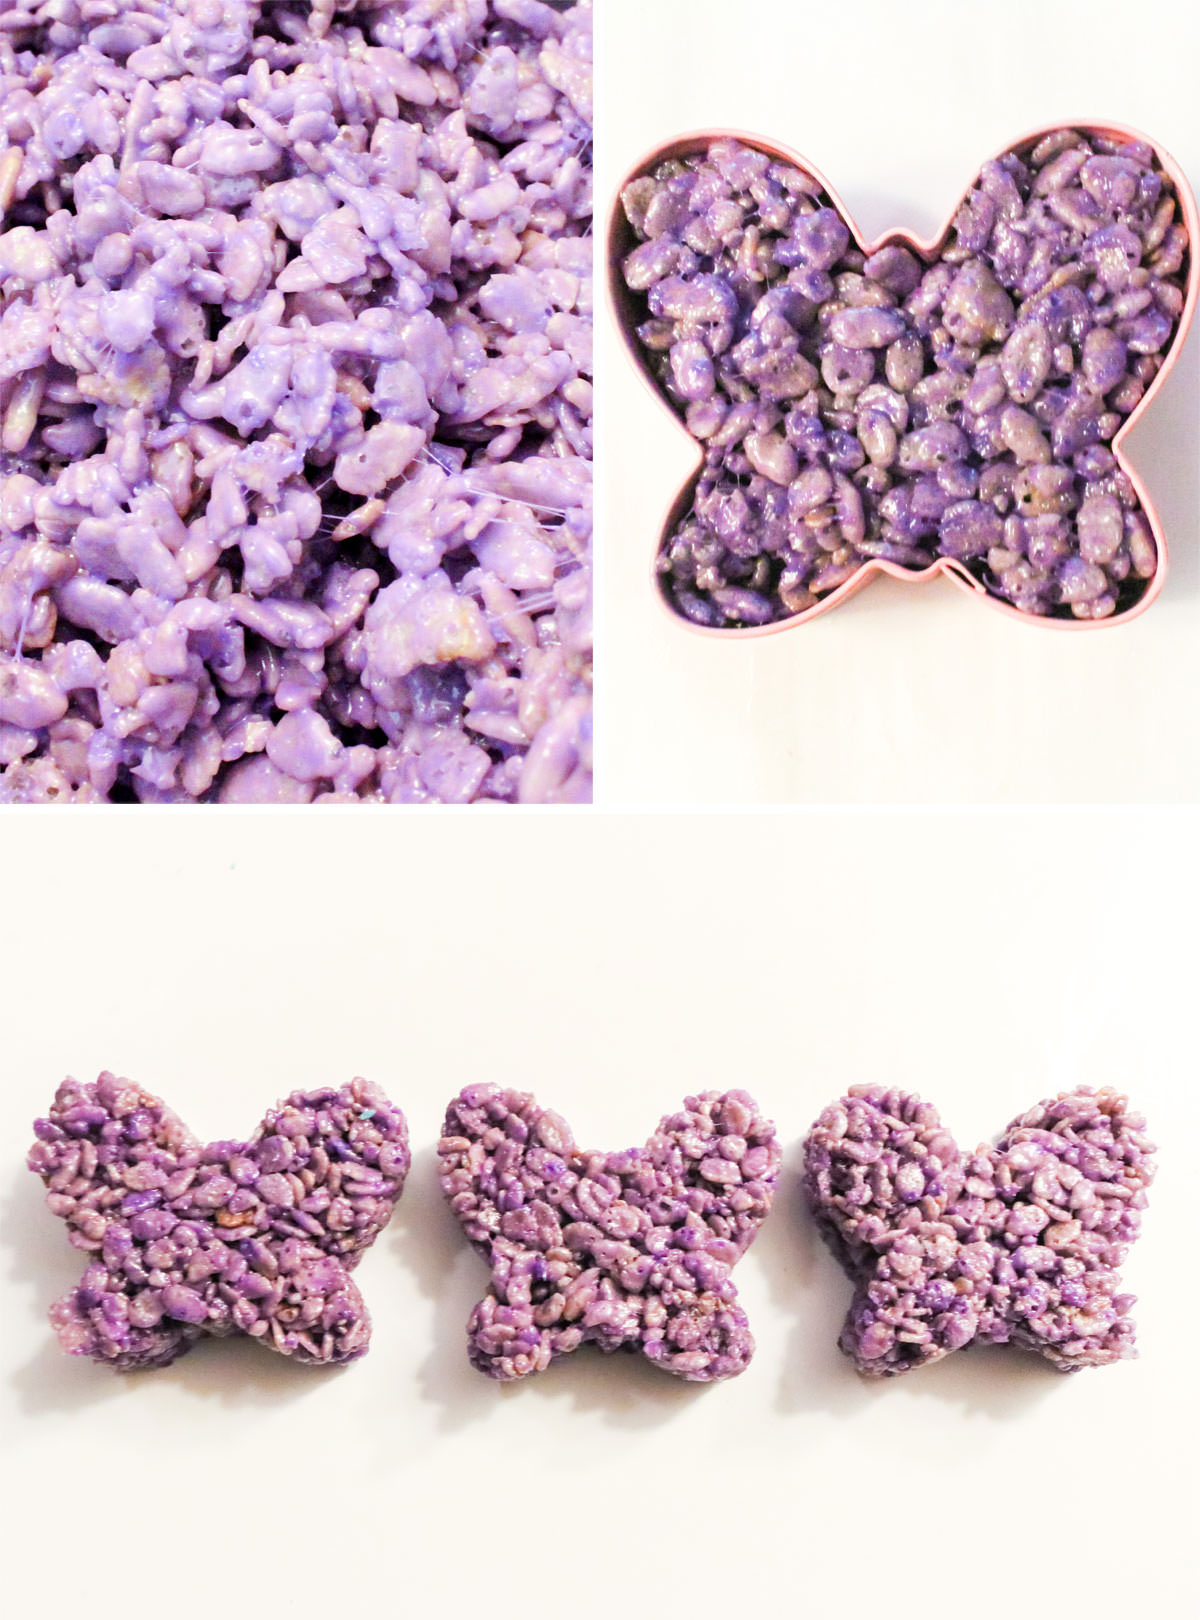 Collage image showing how to make Purple Rice Krispie Treat butterflies.